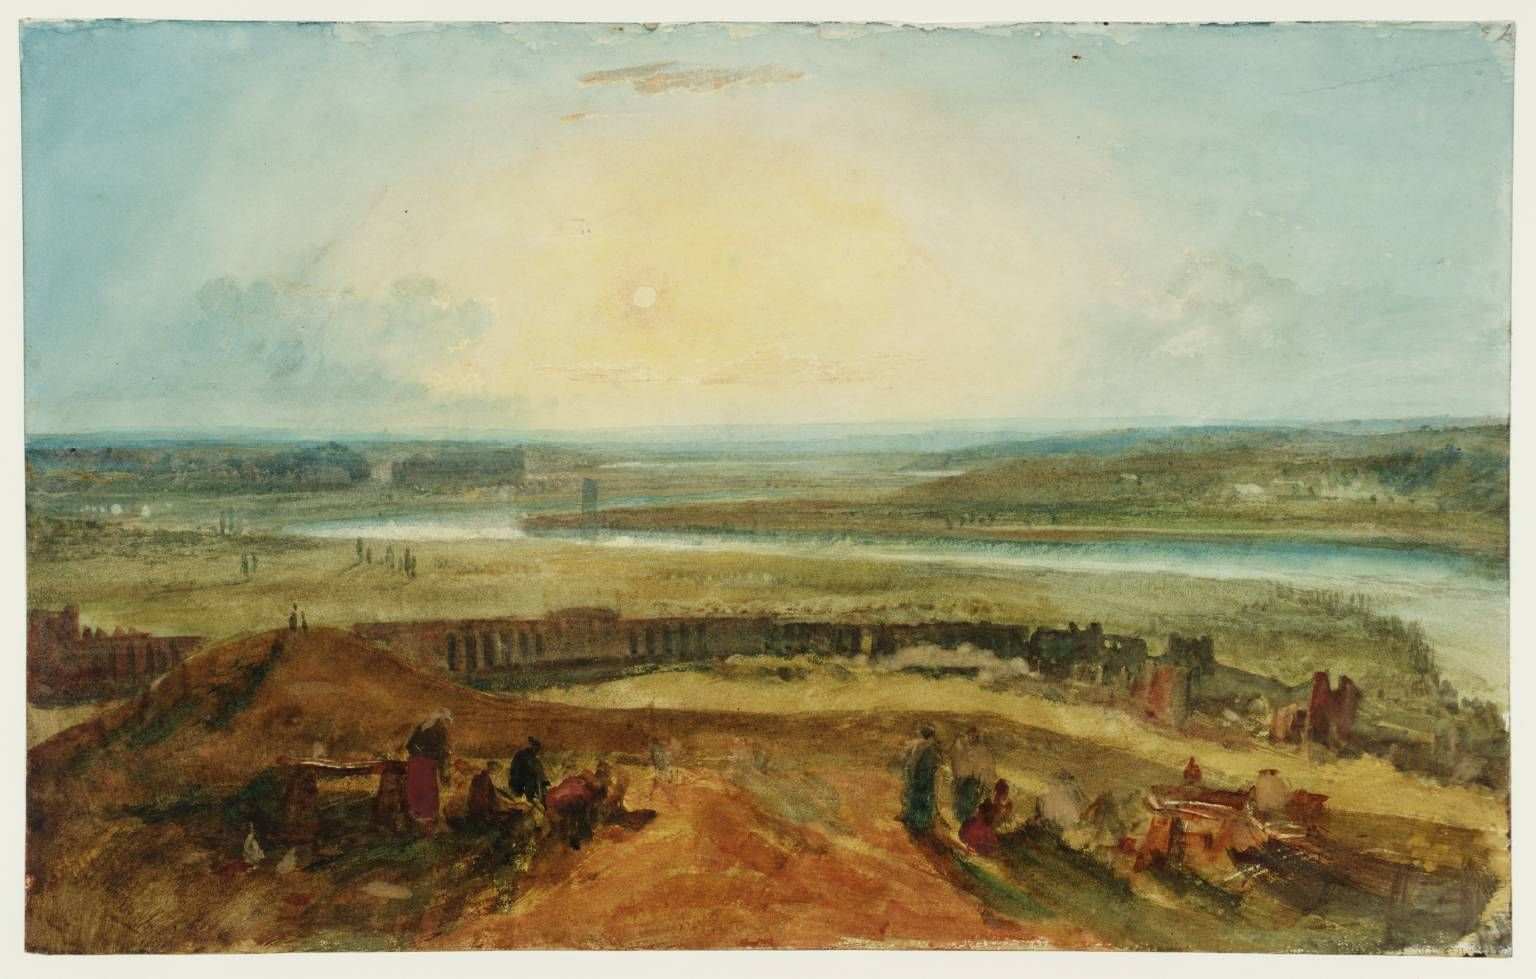 Artwork details  Artist  Joseph Mallord William Turner (1775‑1851)  Title  The Roman Campagna from Monte Testaccio, Sunset  From Naples: Rome. C. Studies Sketchbook  Turner Bequest CLXXXVII  Date  1819  Medium  Gouache, graphite and watercolour on paper